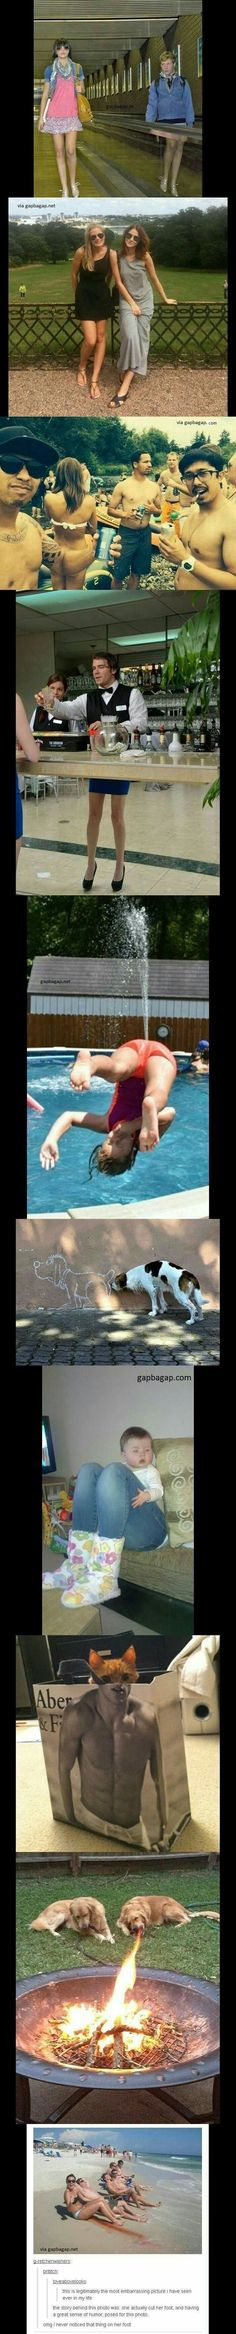 Top 10 Perfectly Timed Photos And The Last One is Hilarious – Gap Ba Gap Dog Quotes Funny, Stupid Funny Memes, Funny Fails, Funny Posts, Funny Humor, Funny Stuff, Funny Pranks, Funny Cartoons, Funny Things